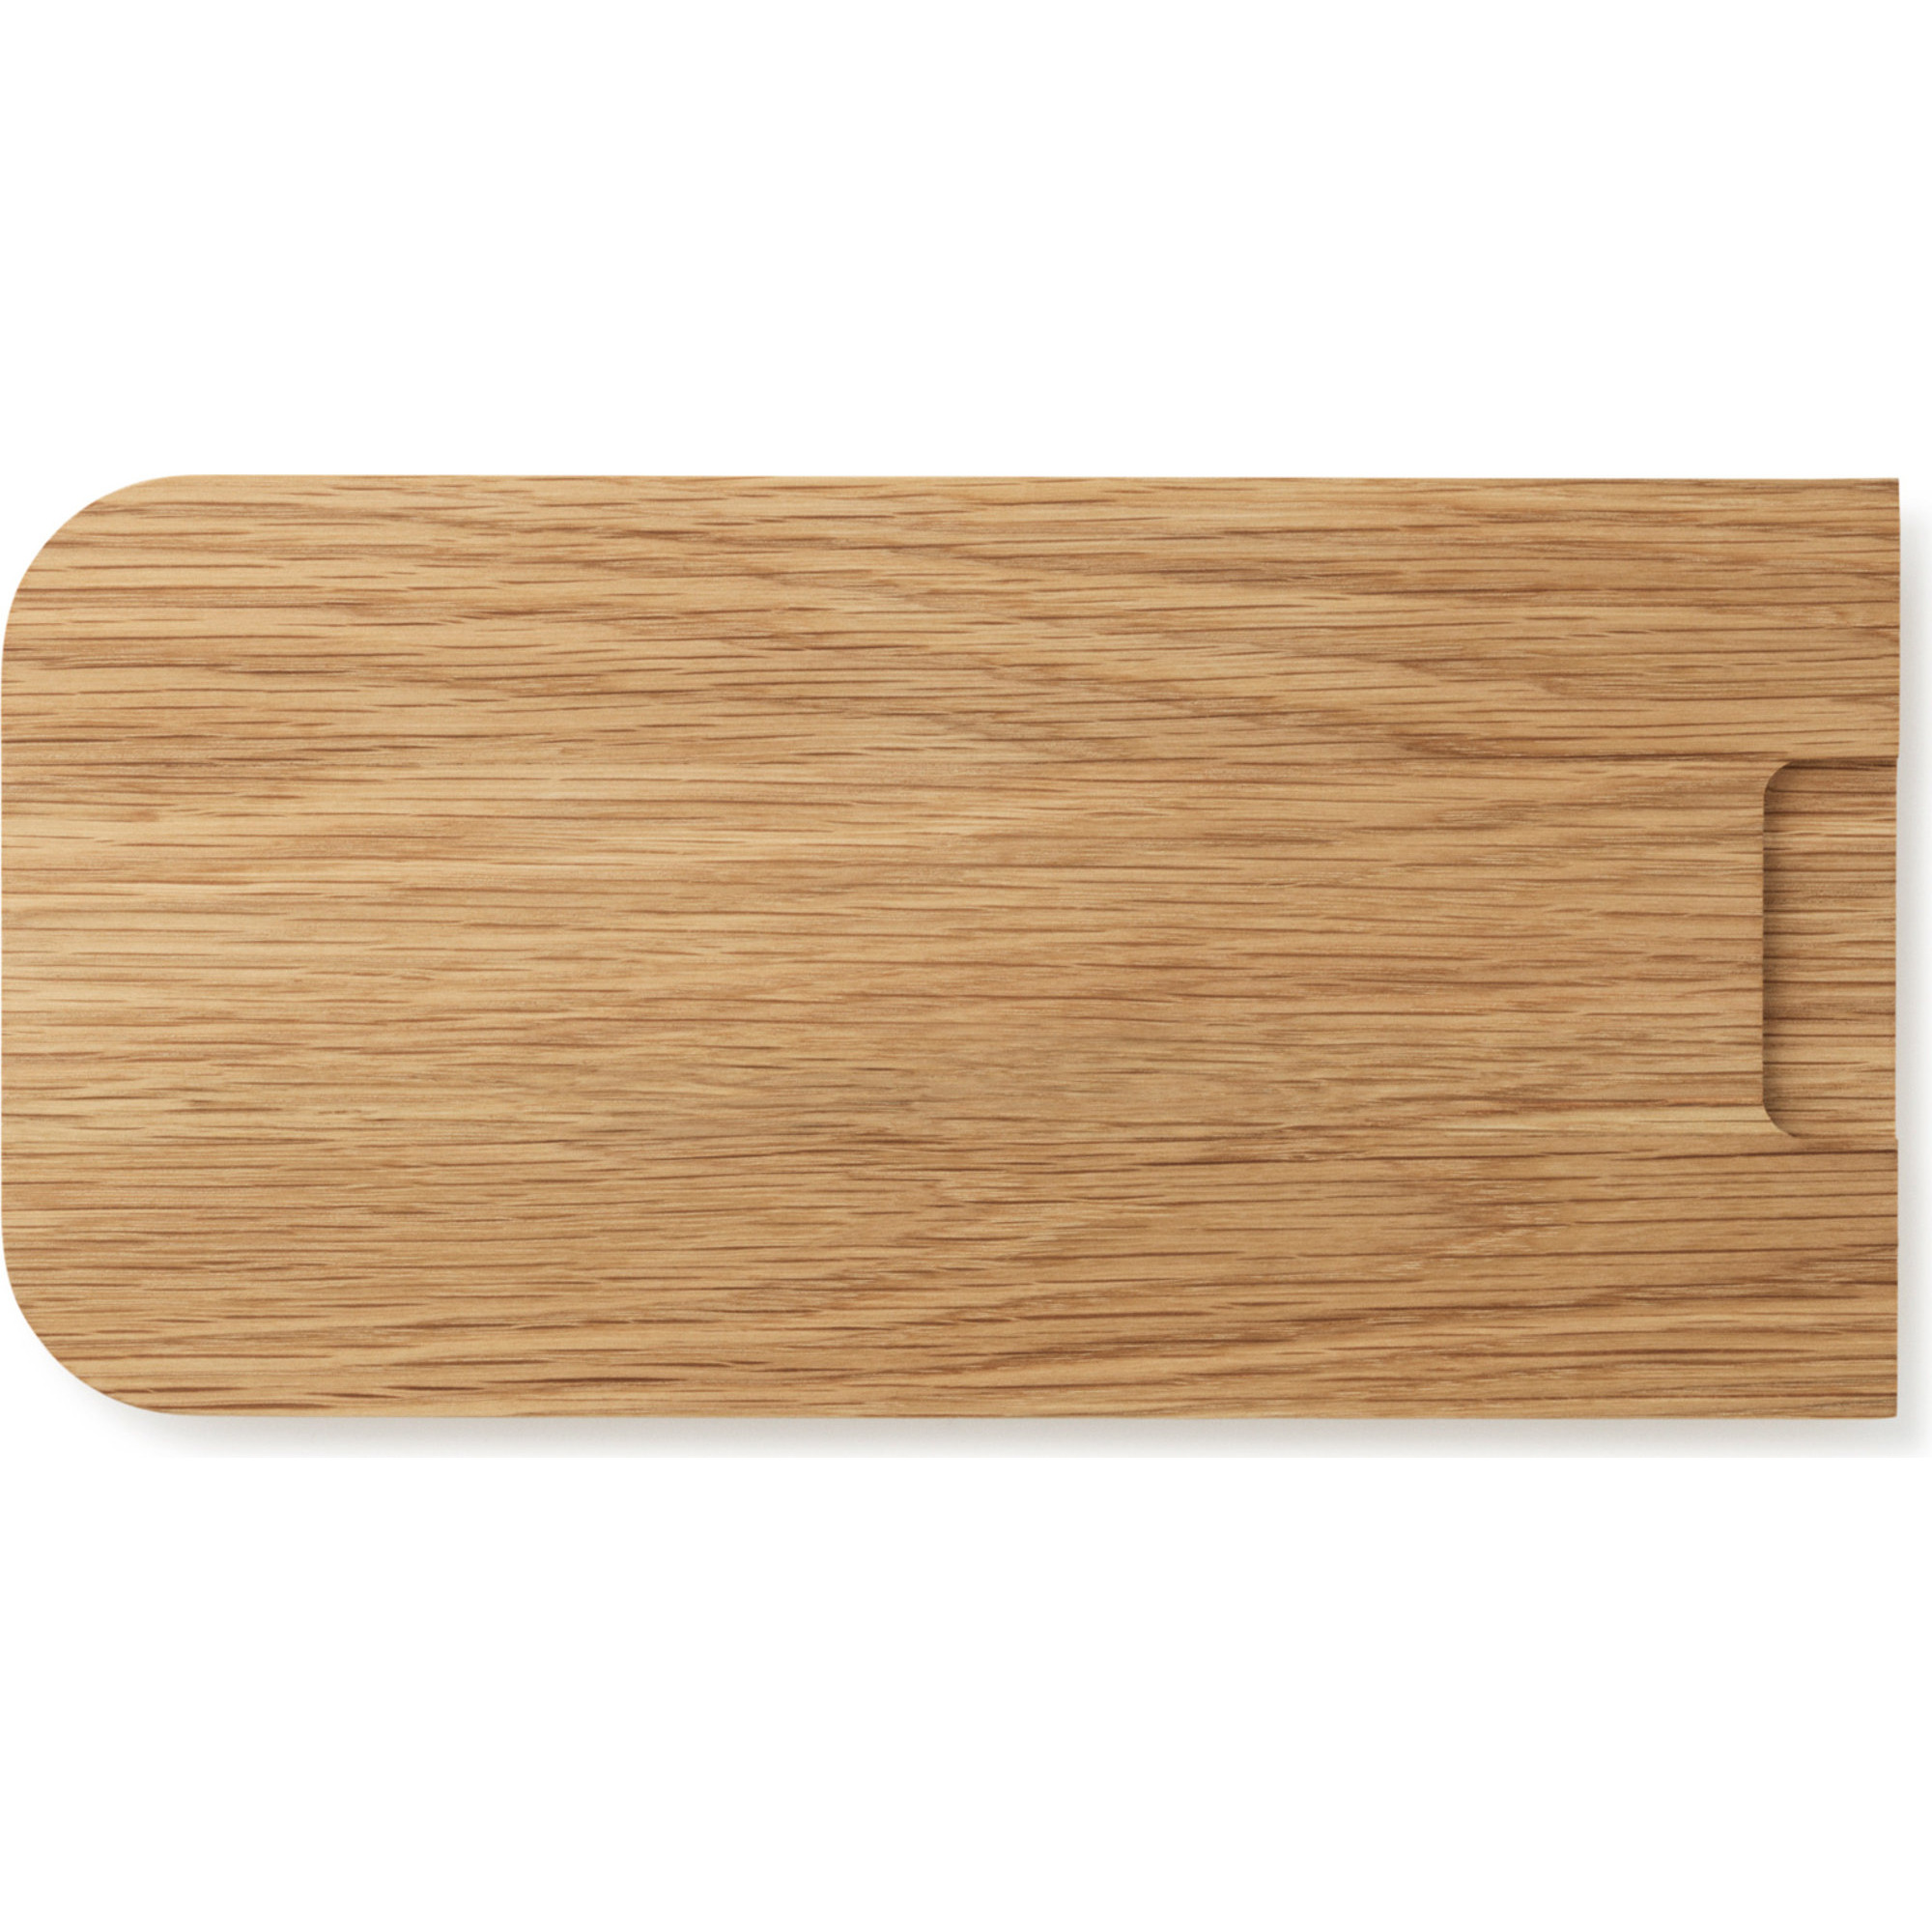 Normann Copenhagen Part Cutting Board Snack